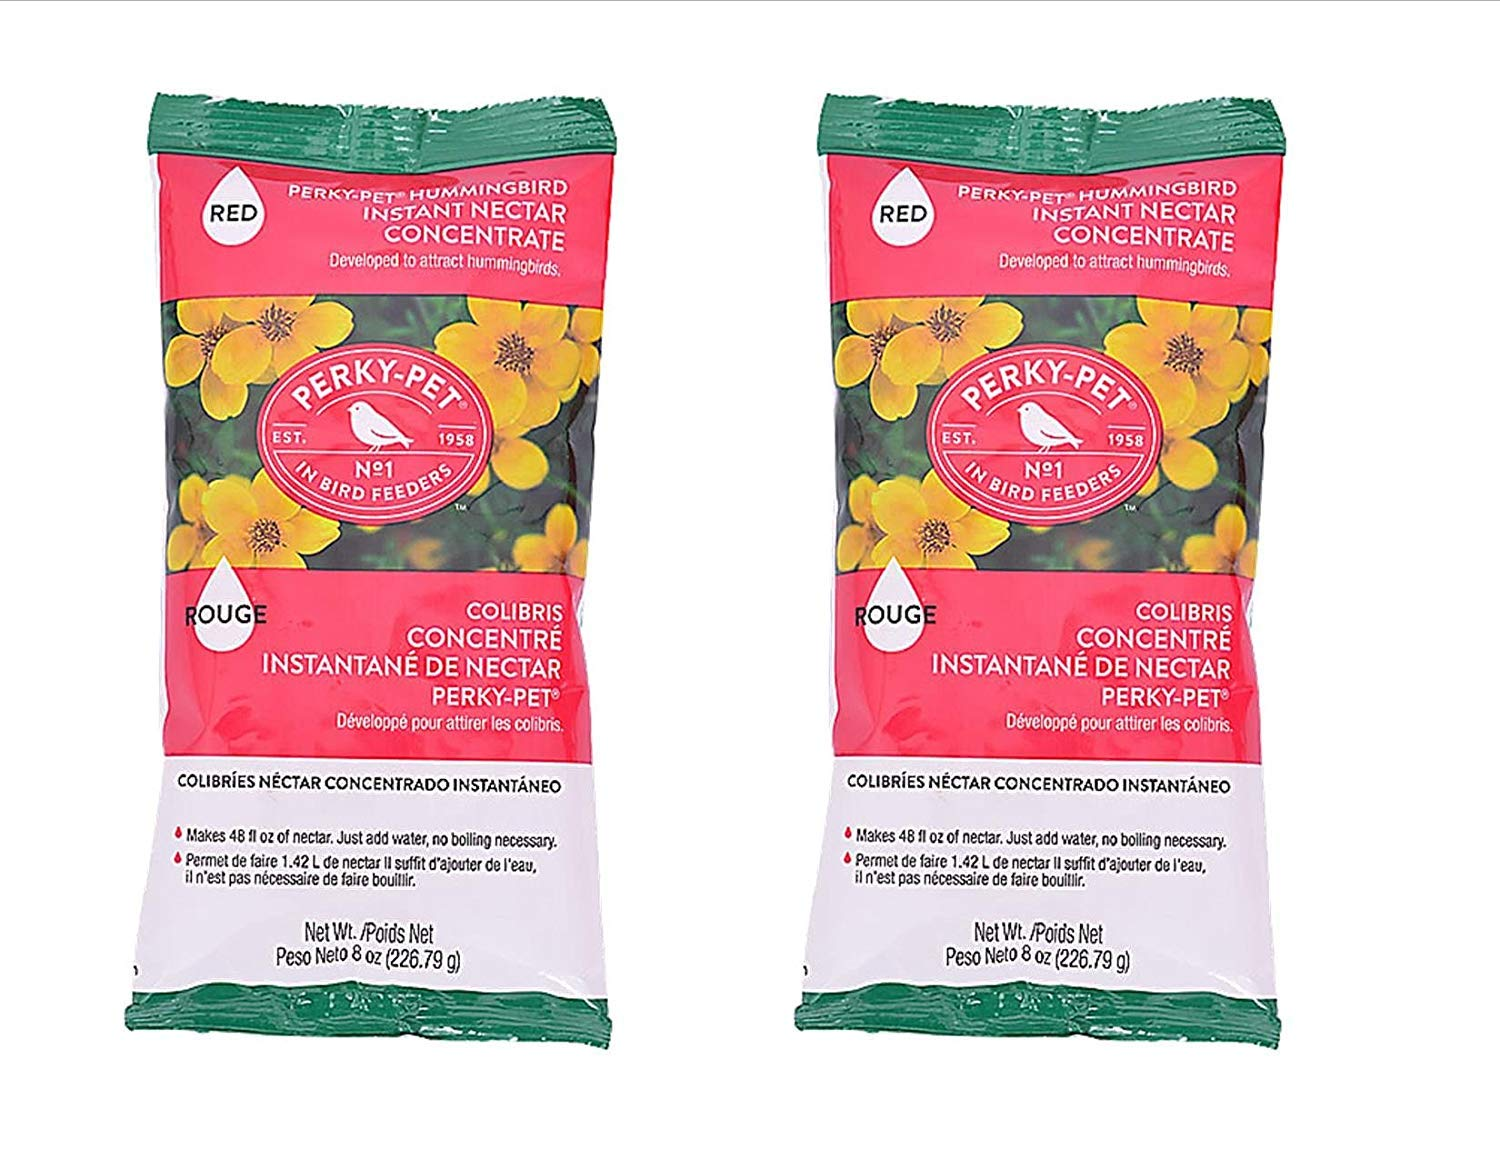 Perky-Pet 2 Pack Instant Hummingbird Nectar Concentrate Each Pack Makes 48oz